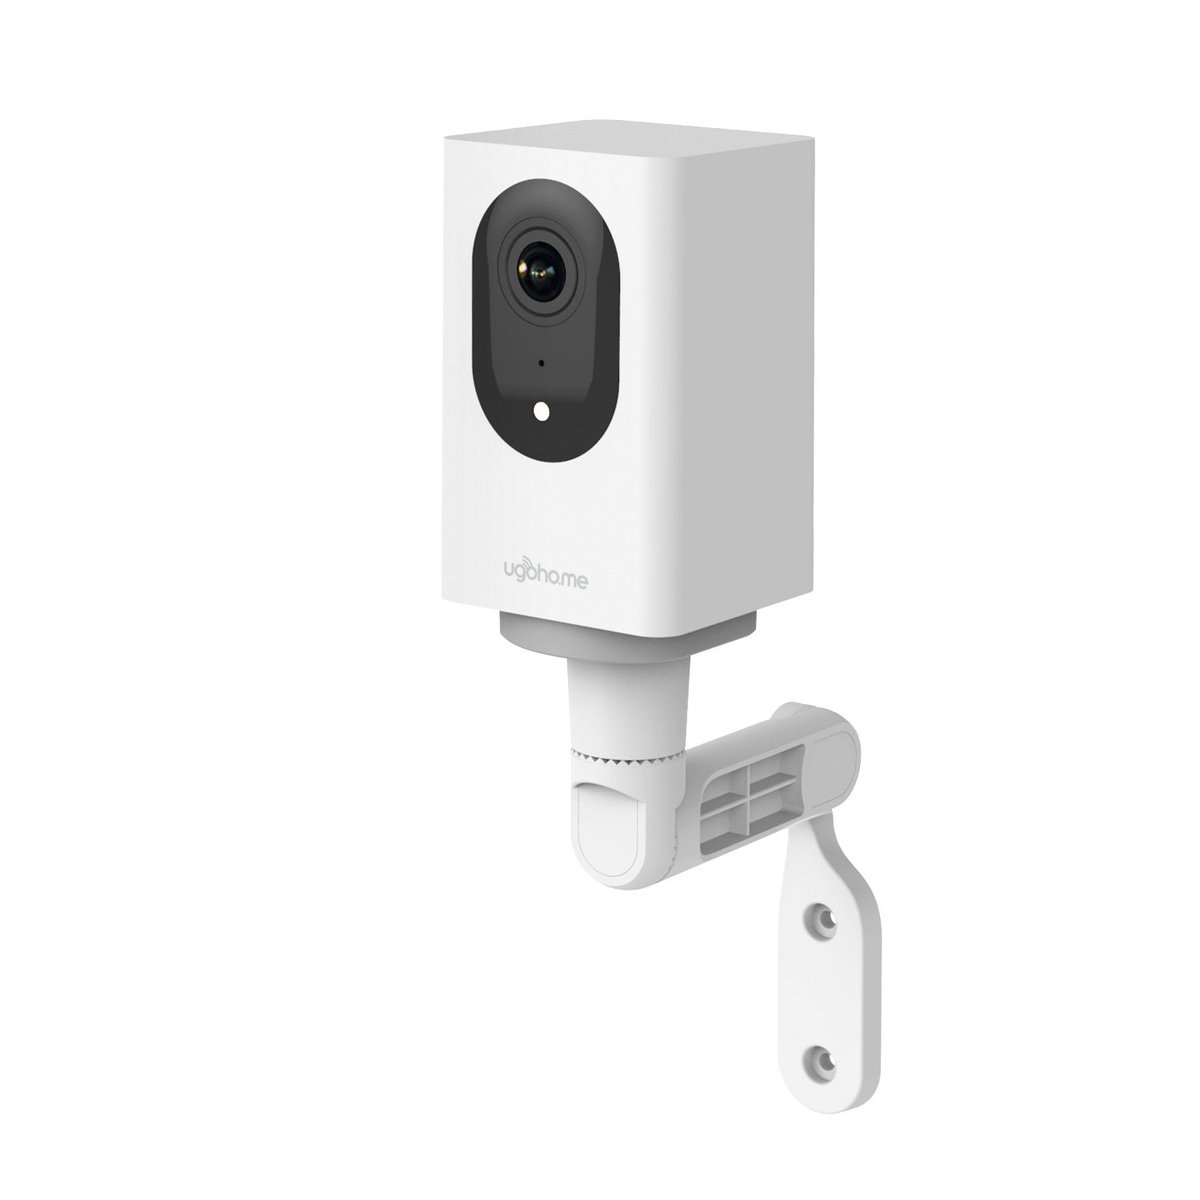 Our #OutdoorCam   * Powered * Spotlight * Weatherproof * 24/7 Continuous Recording  Launches in August! Watch out #WyzeCam !  #securitycamera #hometech #alexa #homesecurity  #security #smarttech #smarthomewithsmartdevices #gadgets #techlover #smarthometechnology #SmartTechnology https://t.co/uNJcbD6ptw